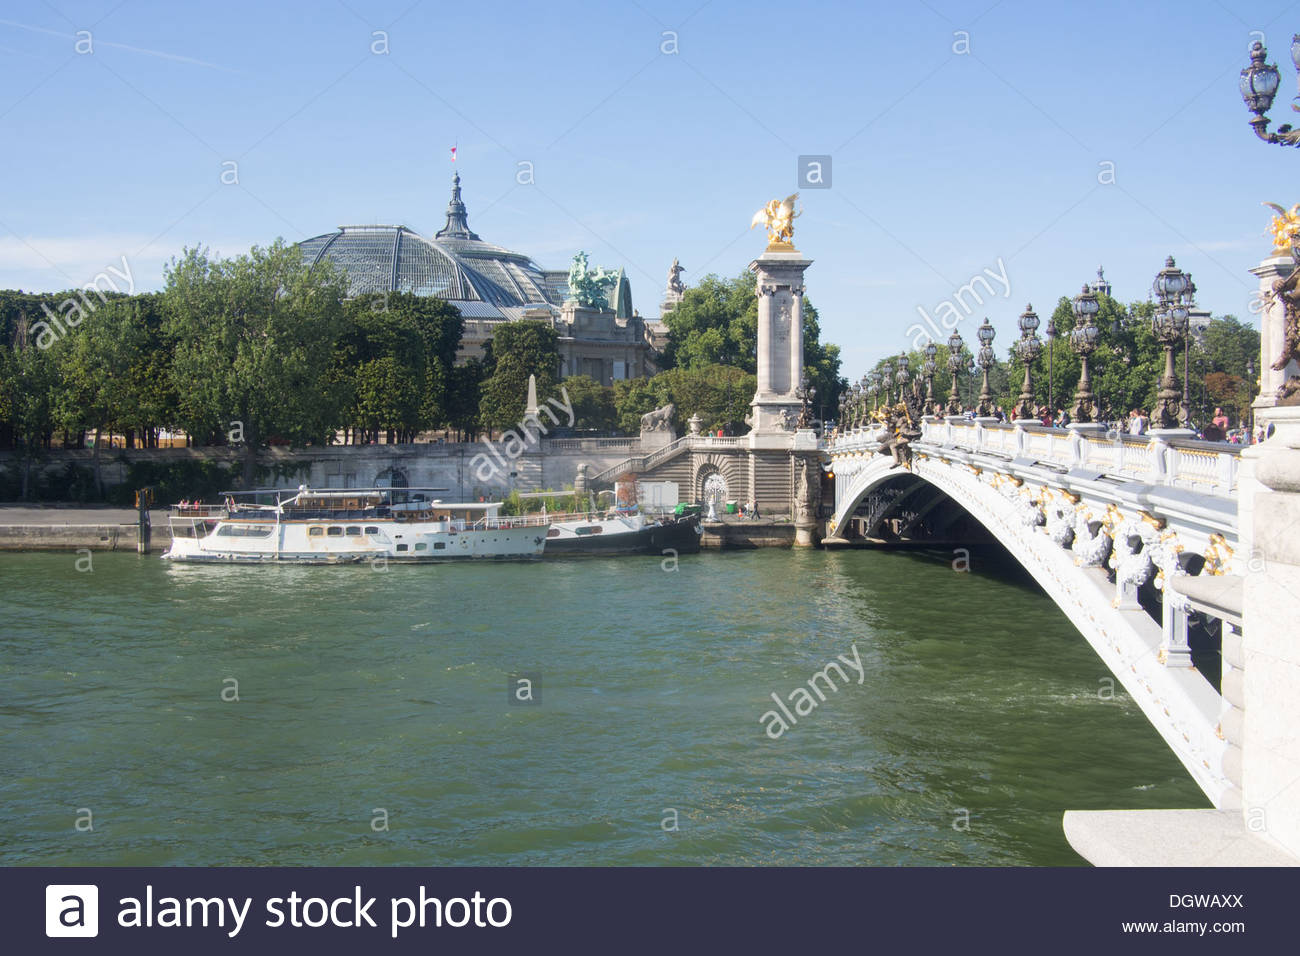 Alexandra III bridge on the River Seine and the Grand Palace in the background, Paris, France. - Stock Image